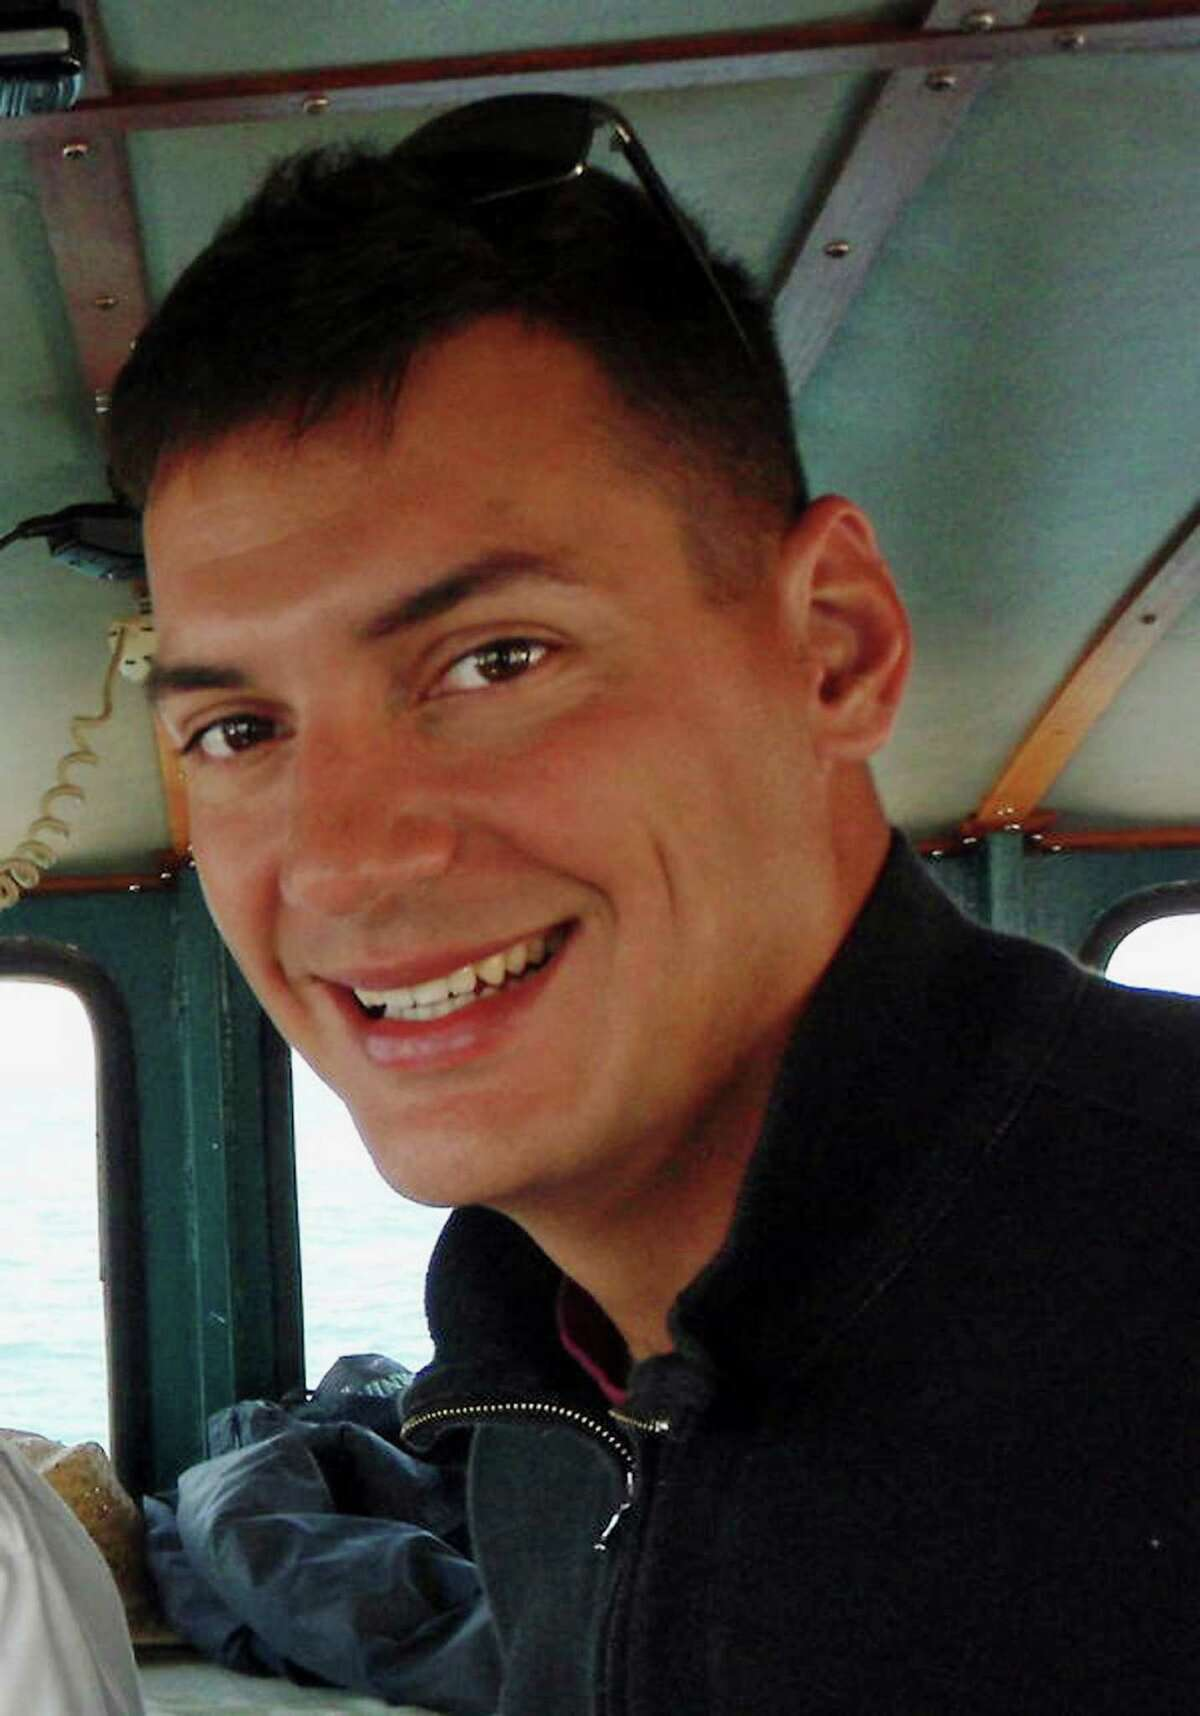 As a Marine veteran, Austin Tice understood the risks he was taking.